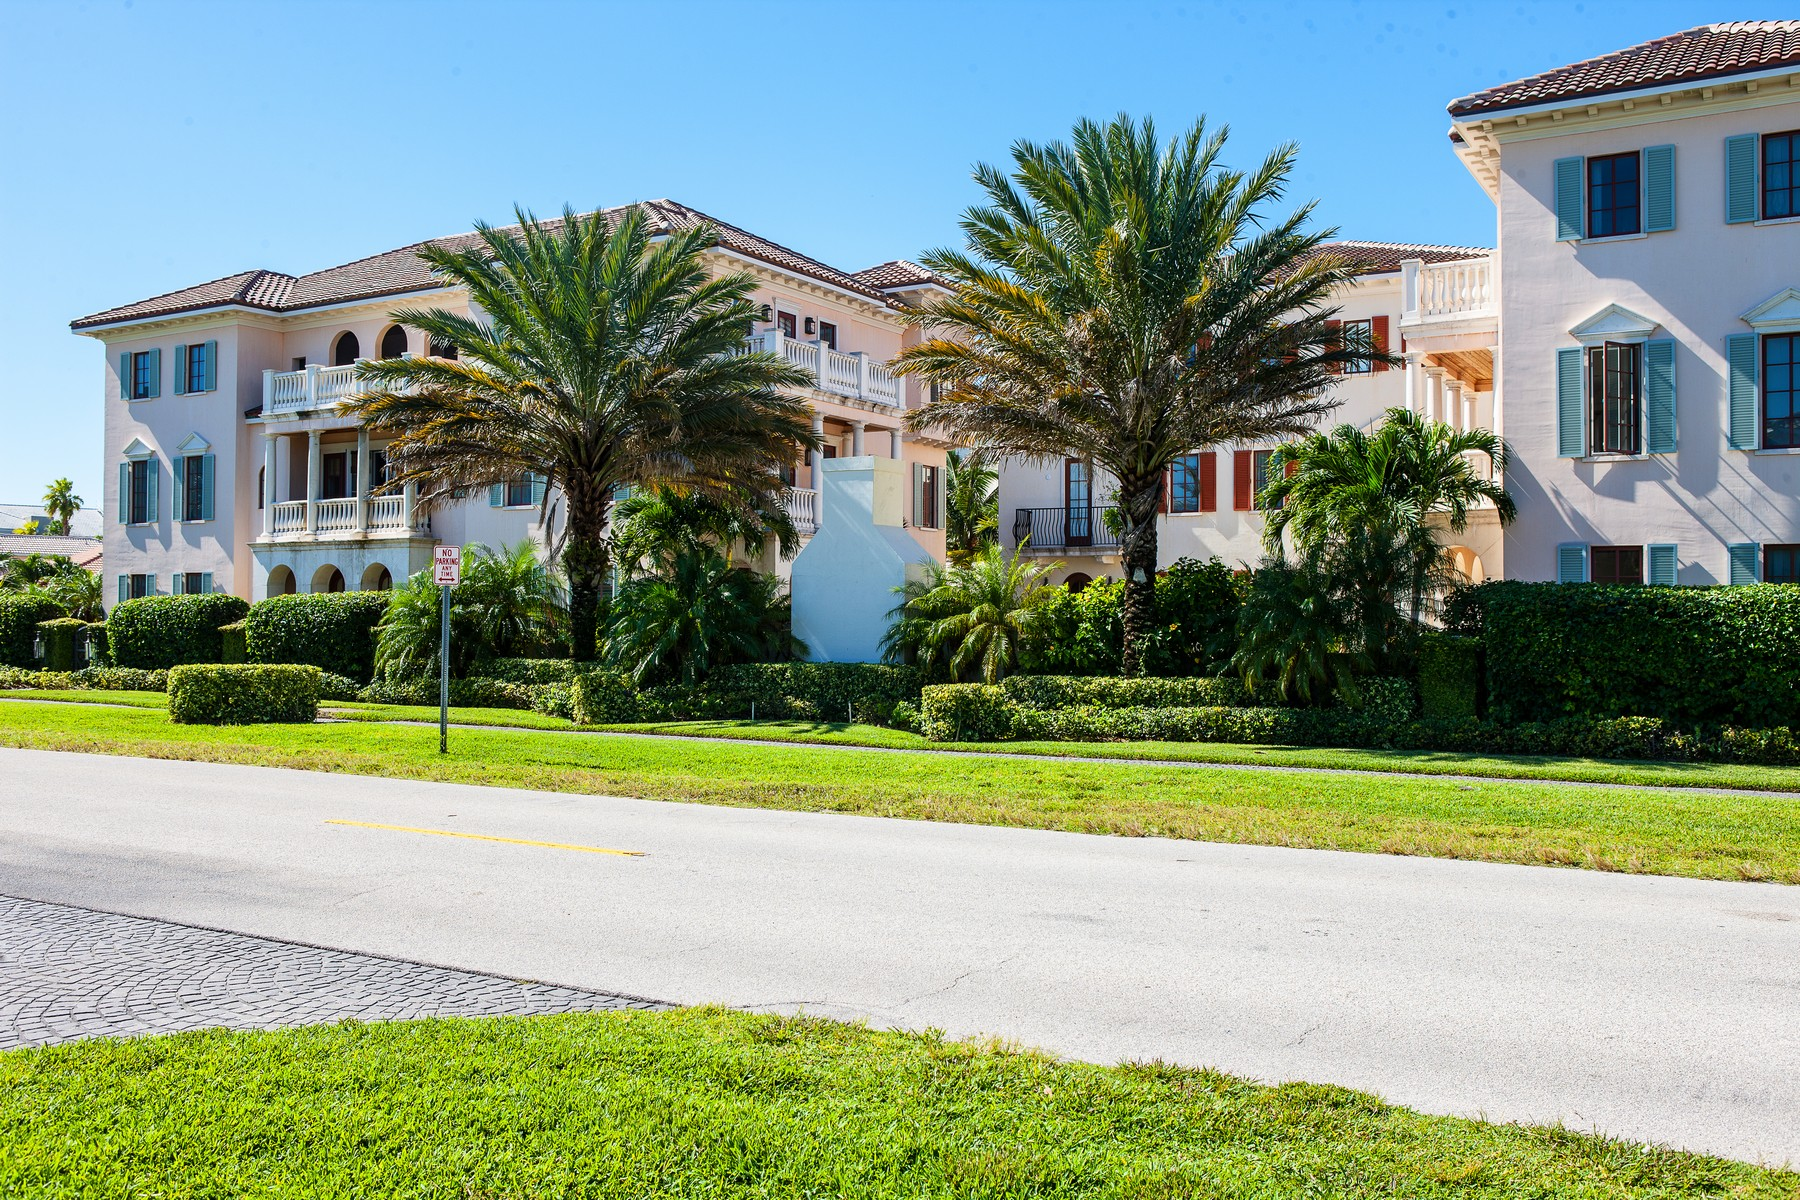 Townhouse for Sale at Elegant Italian Villa by Beach 1515 Ocean Drive #9 Vero Beach, Florida 32963 United States